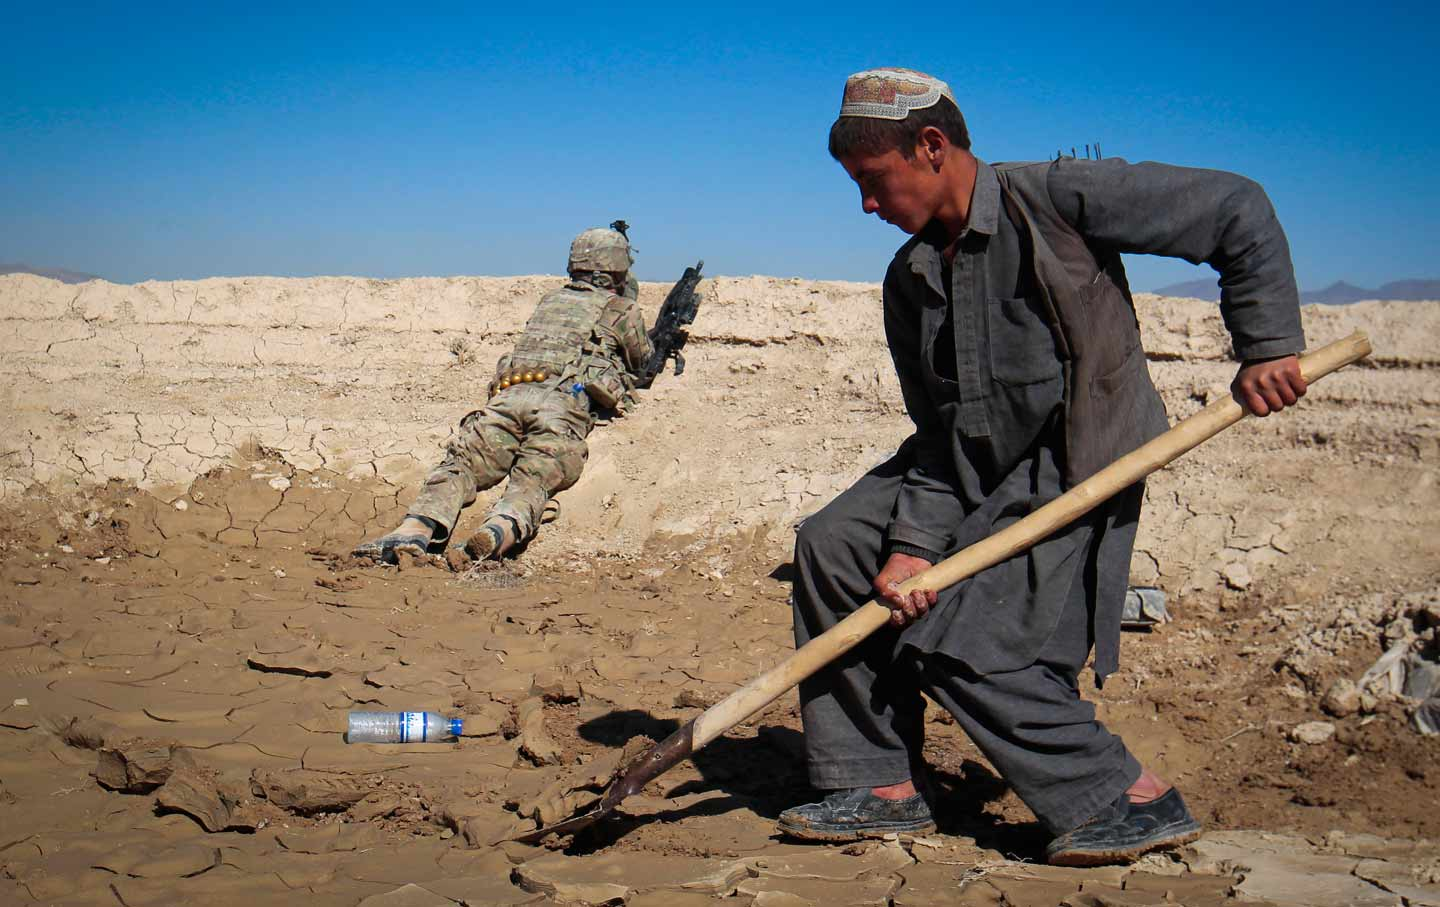 What Are The Natural Resources Of Afghanistan